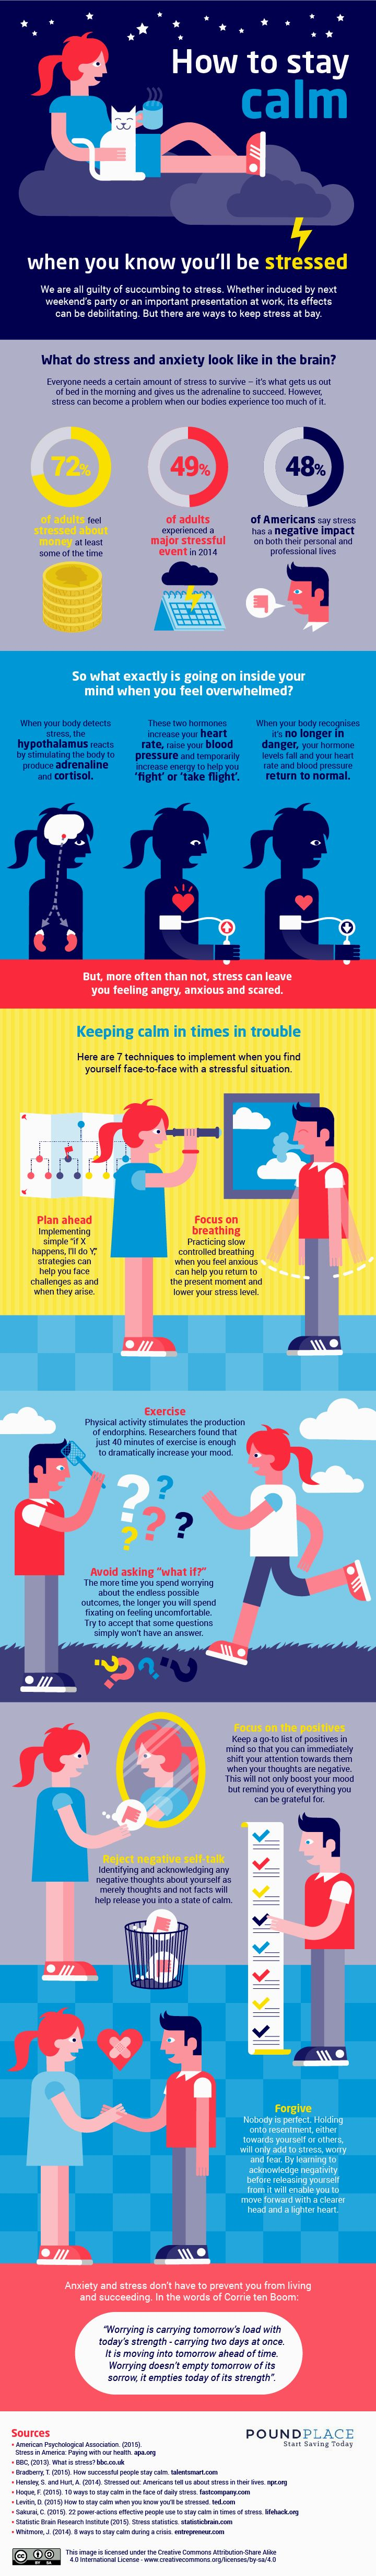 How to Stay Calm Under Pressure [Infographic]  http://blog.hubspot.com/marketing/stay-calm-when-stressed